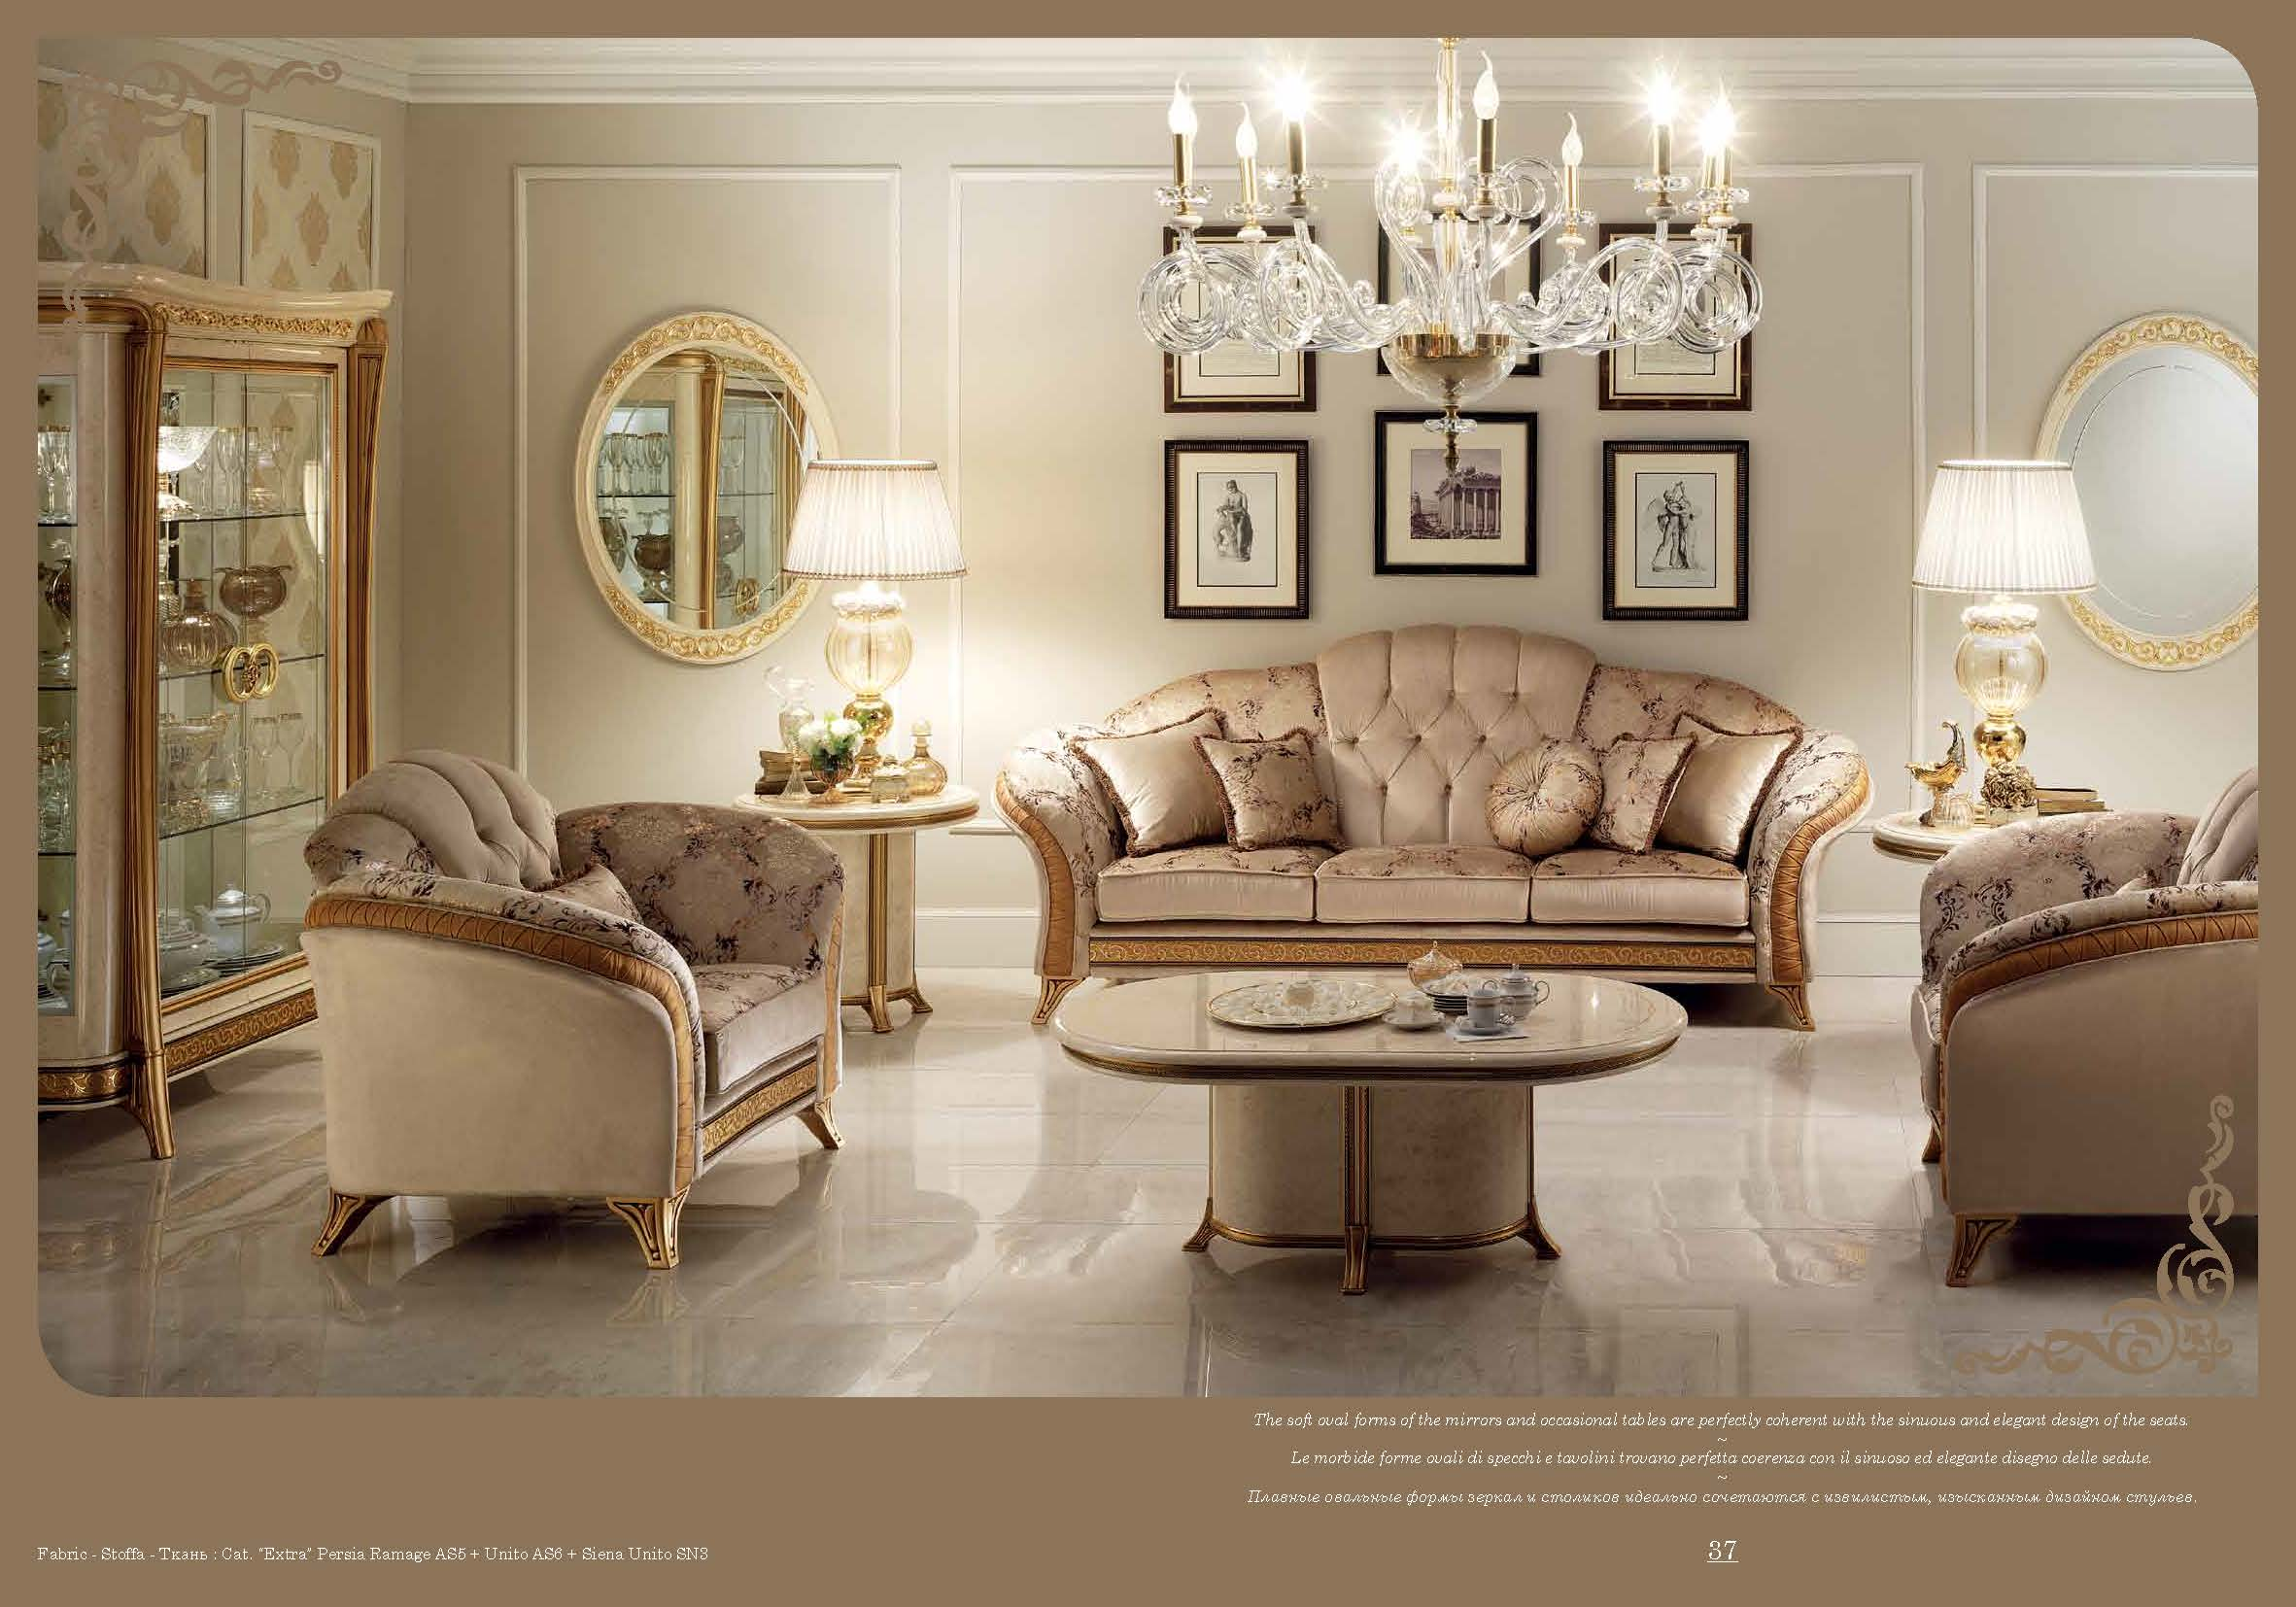 Melodia lounge arredoclassic living room italy collections - Living room lounge ...